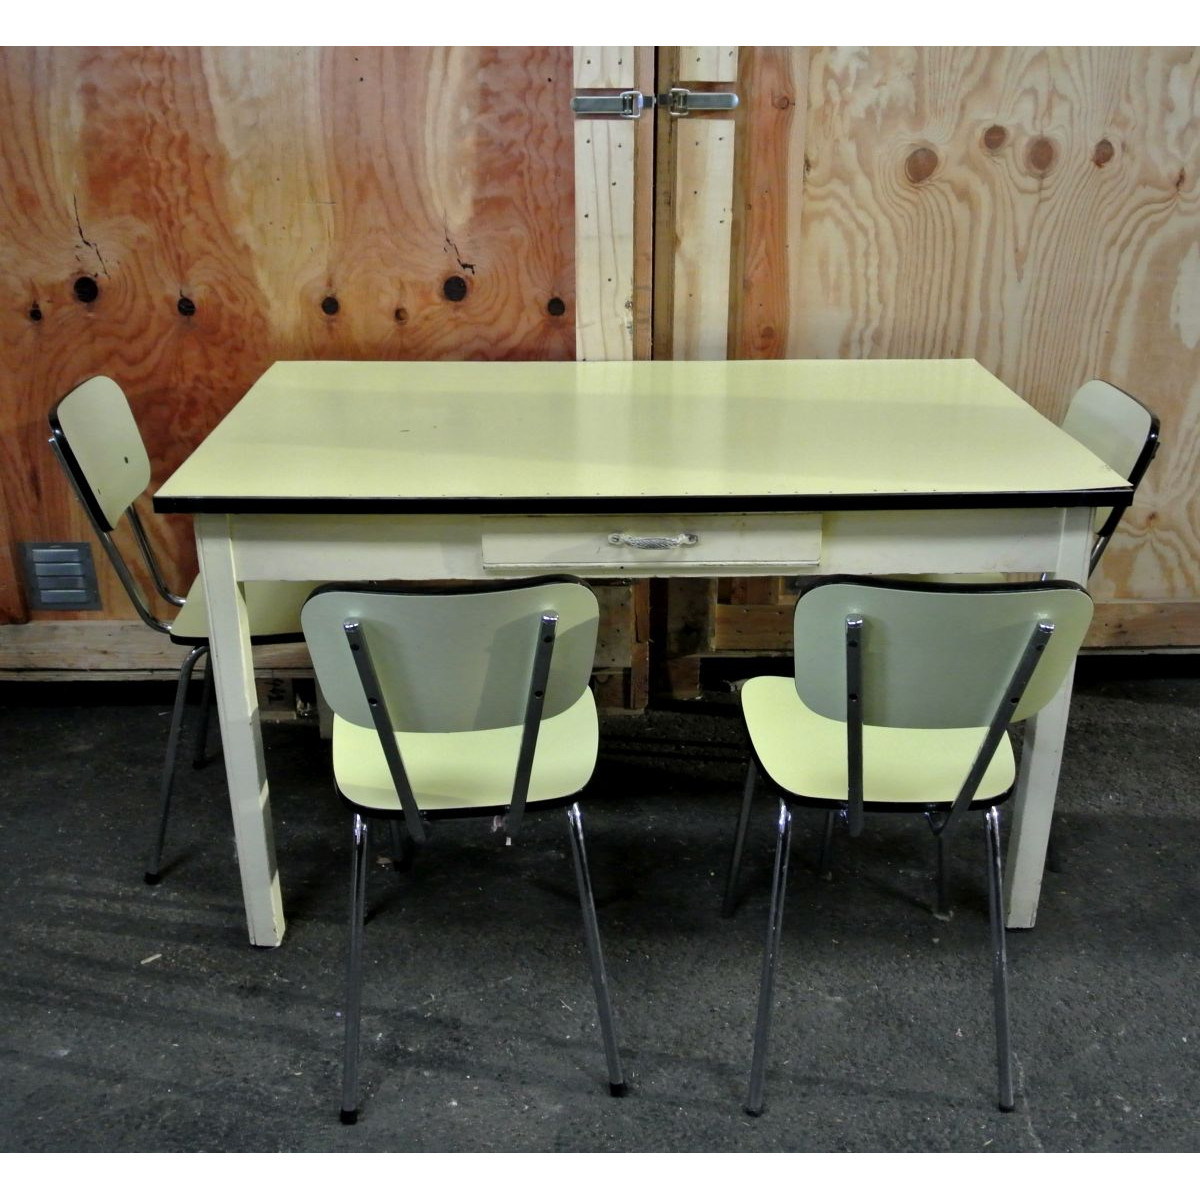 formica yellow kitchen table  4 chairs vintage 1960  le